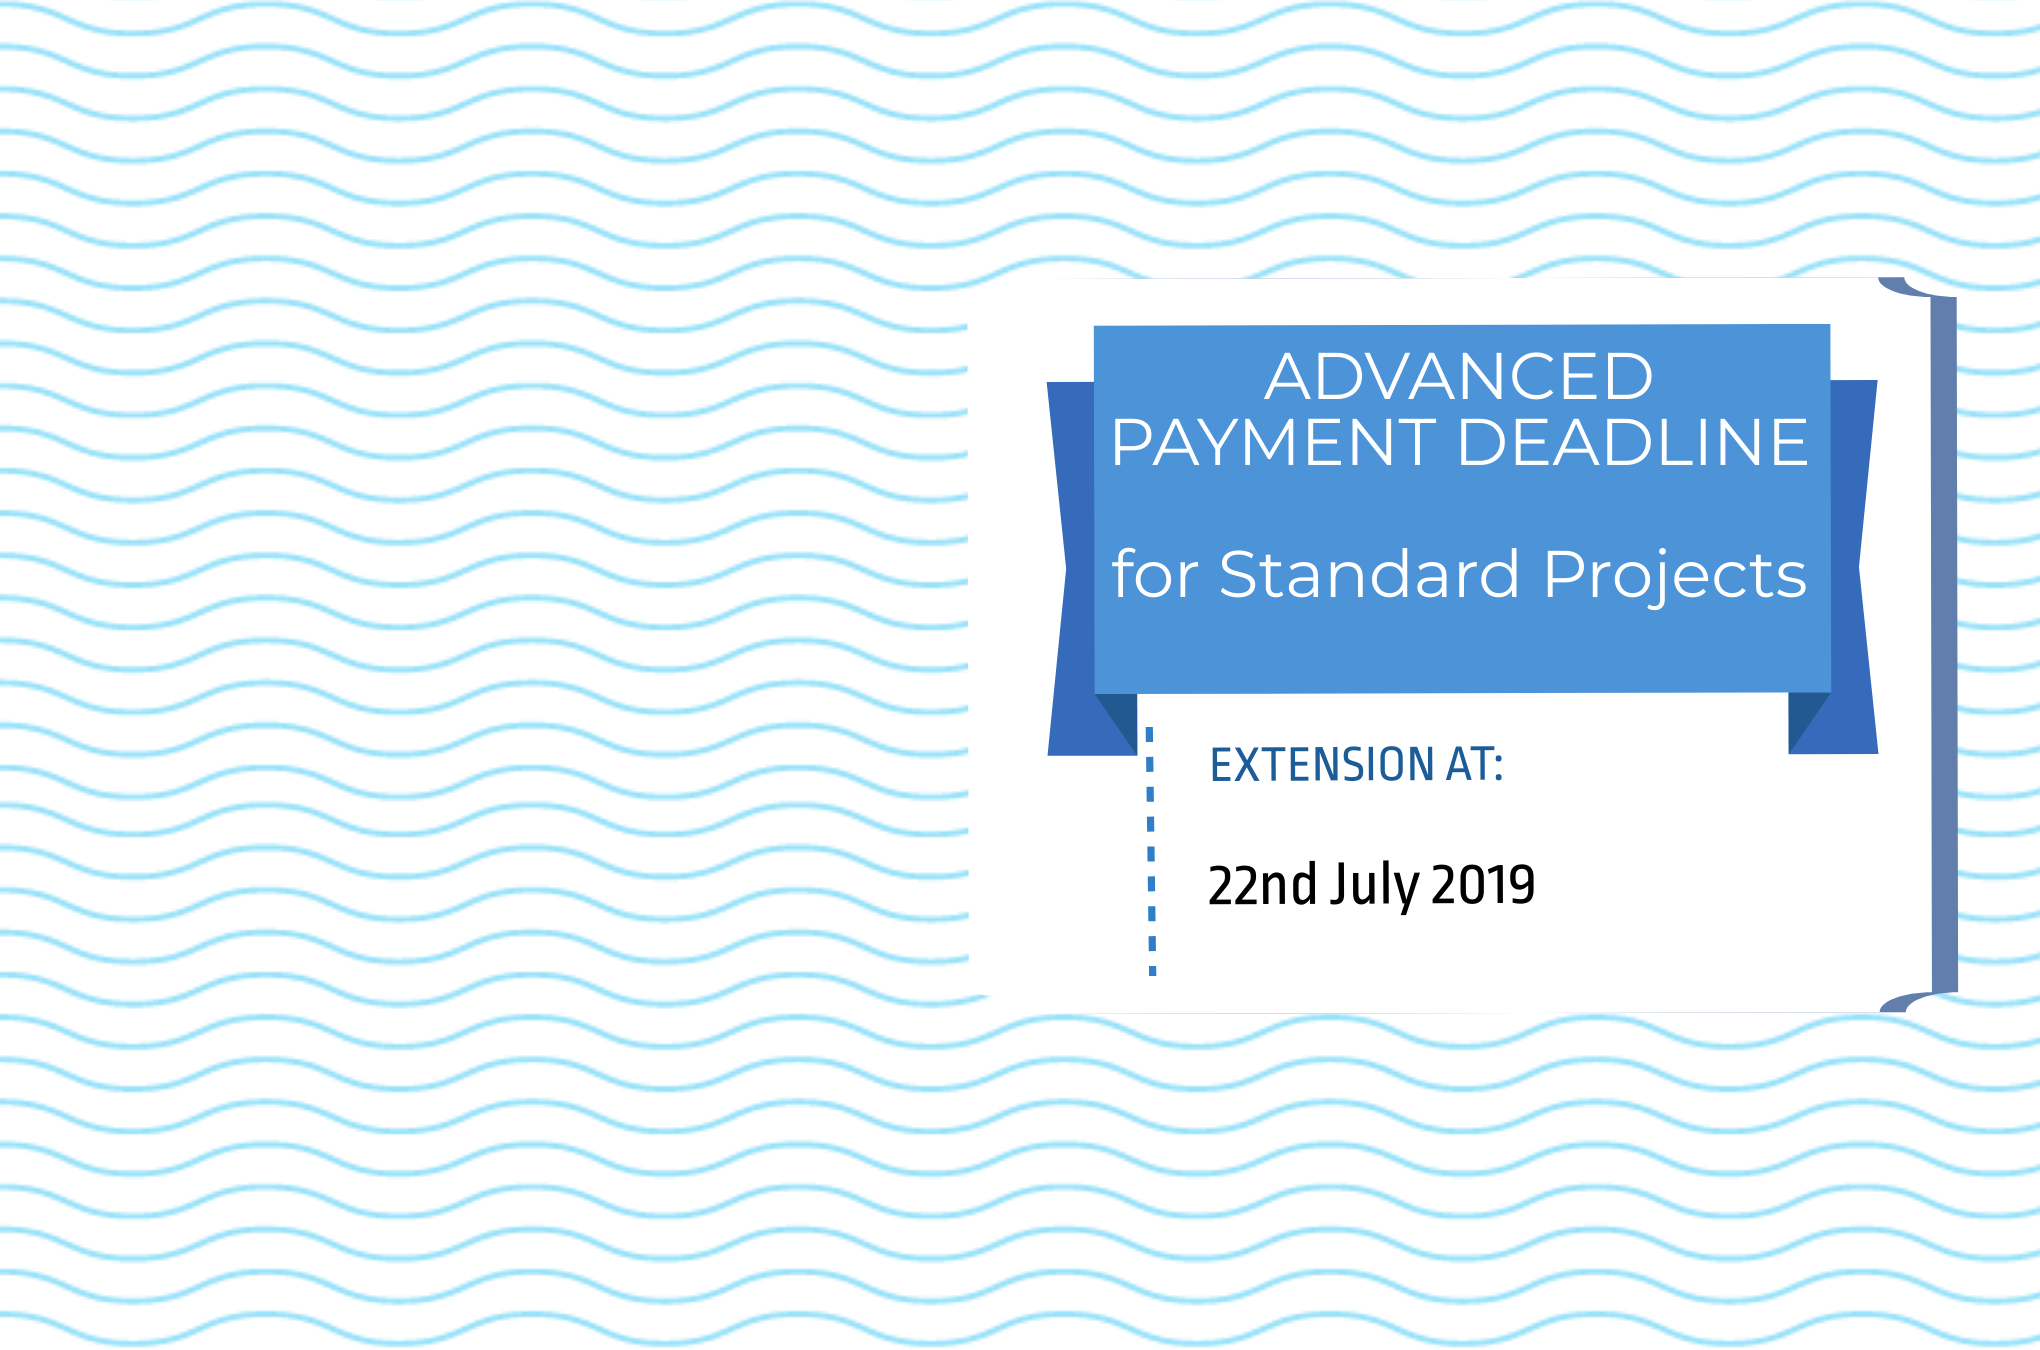 NEW DEADLINE FOR ADVANCE PAYMENT